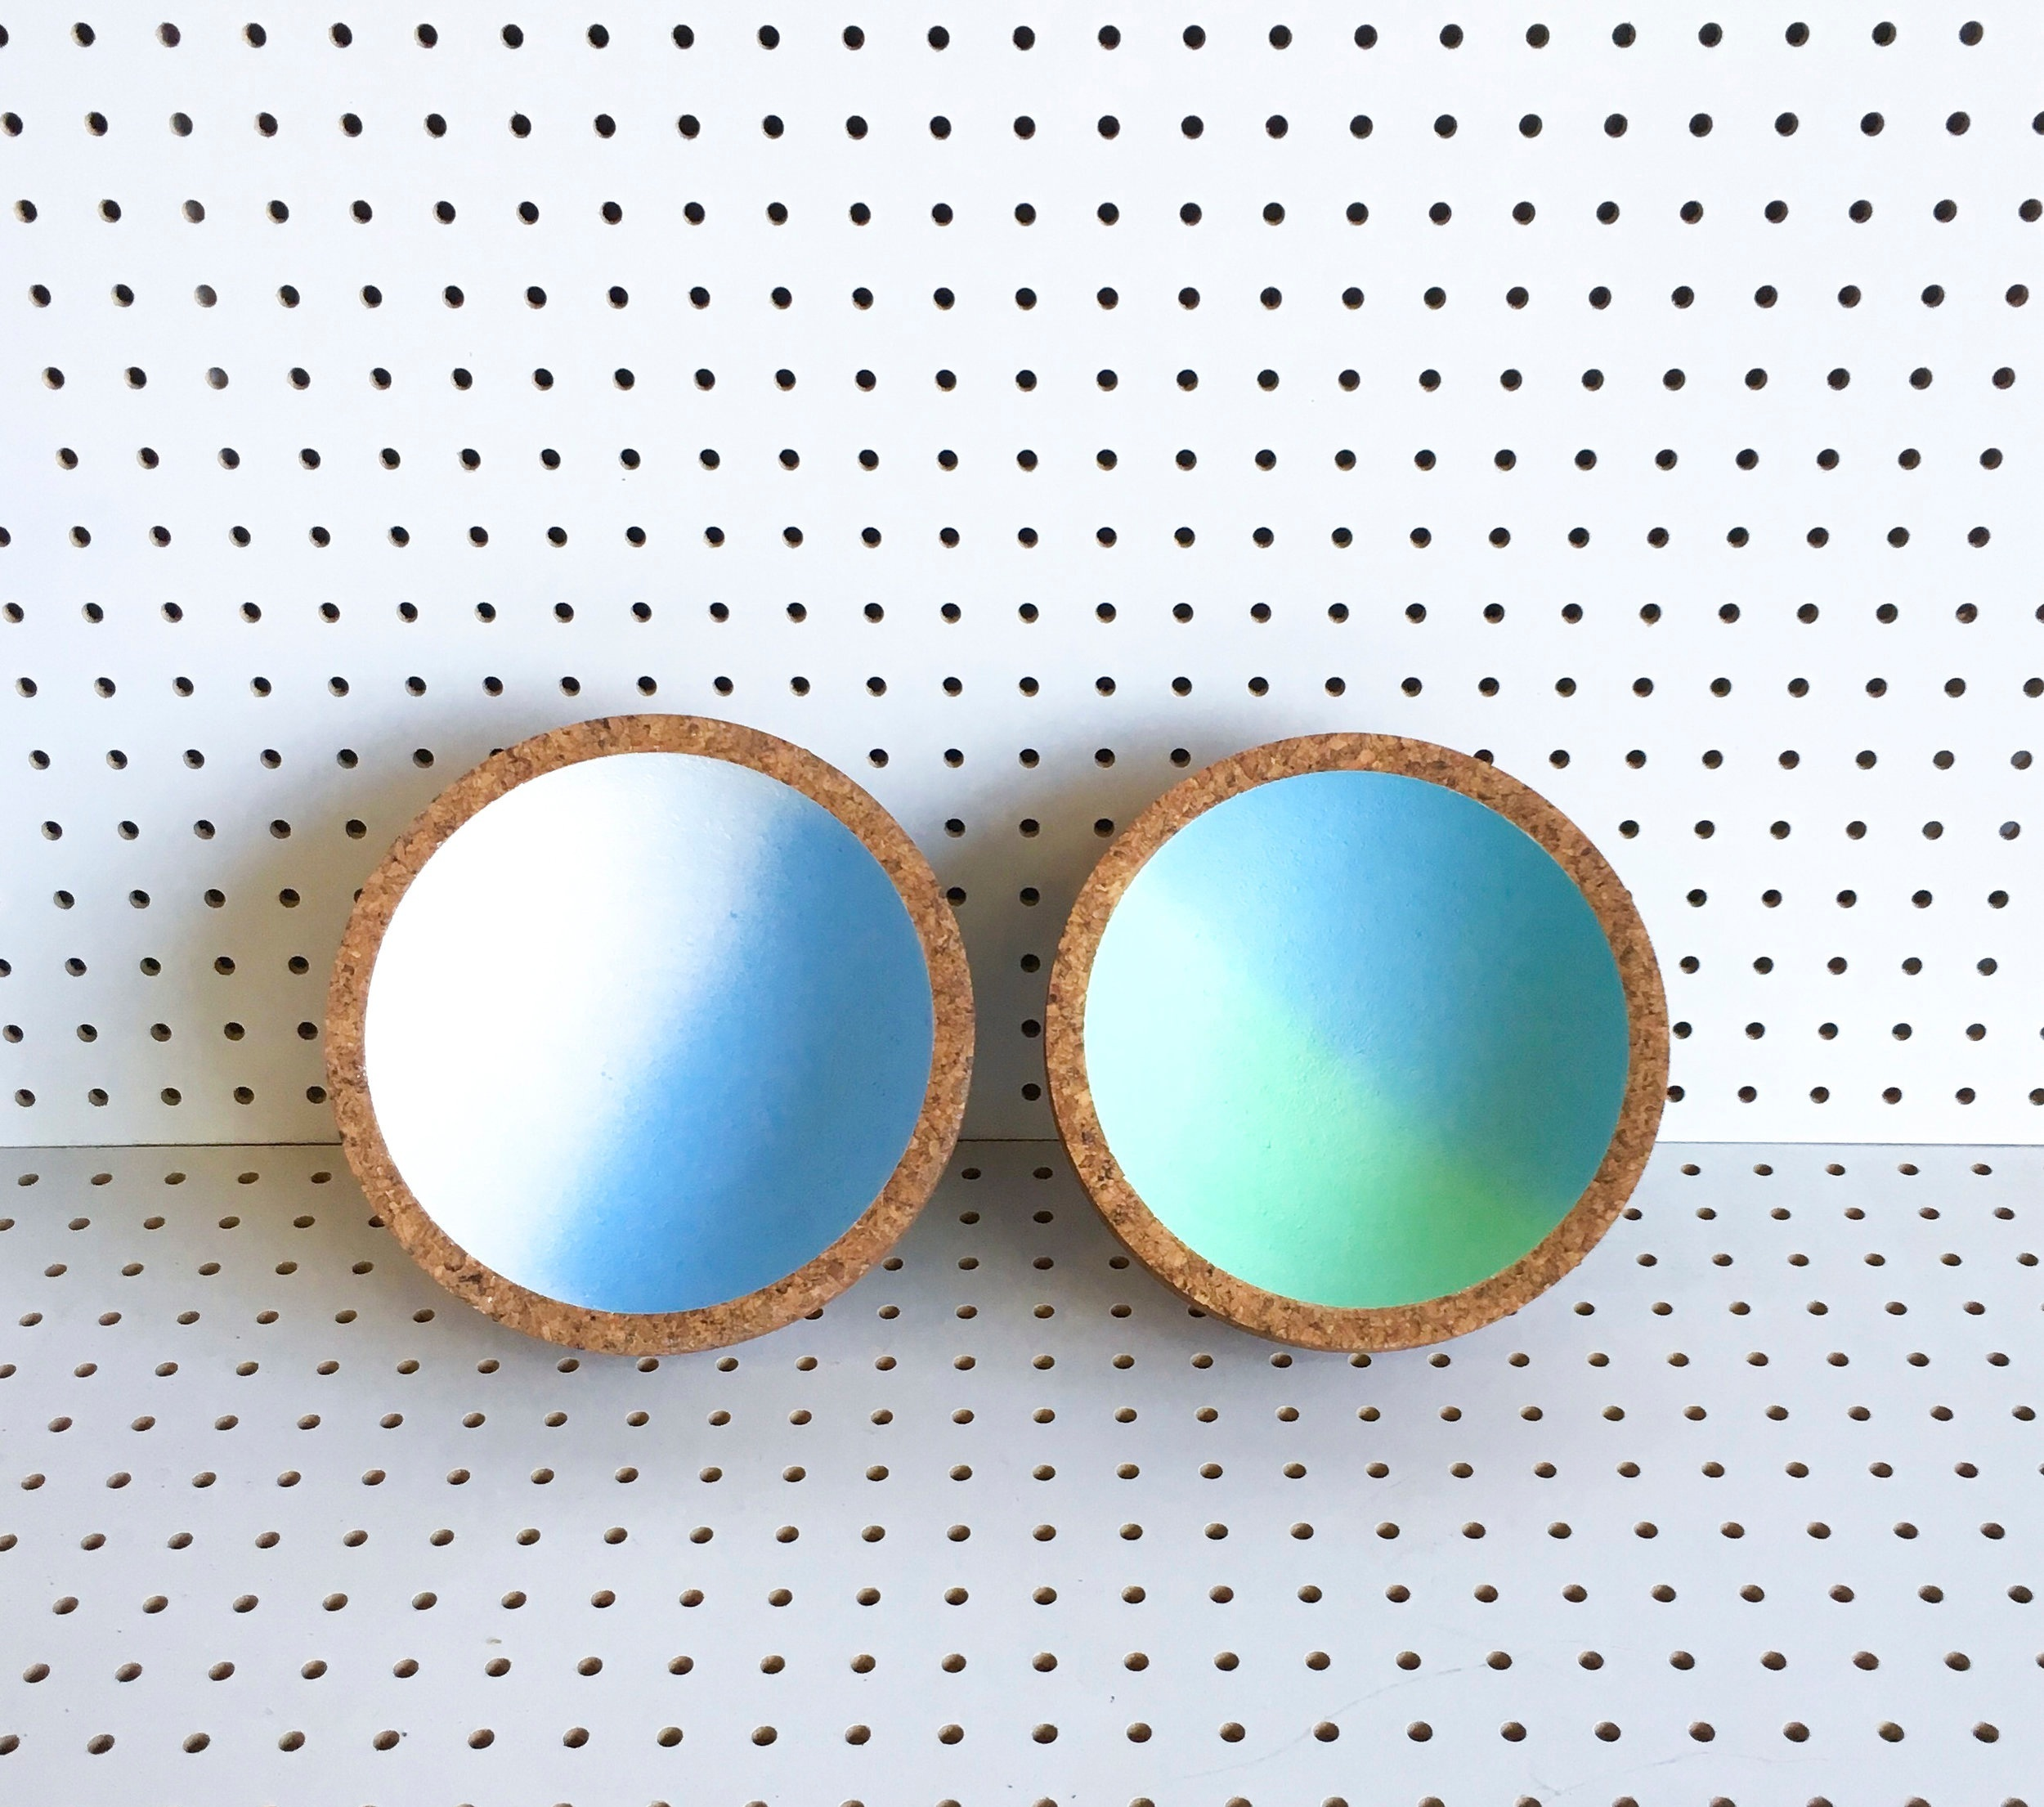 "Gennaio Bowls     Small lathe-turned bowls painted in dual tones, evoking sky, sea and spring green tones. 8"" x 3"".  SHOP"